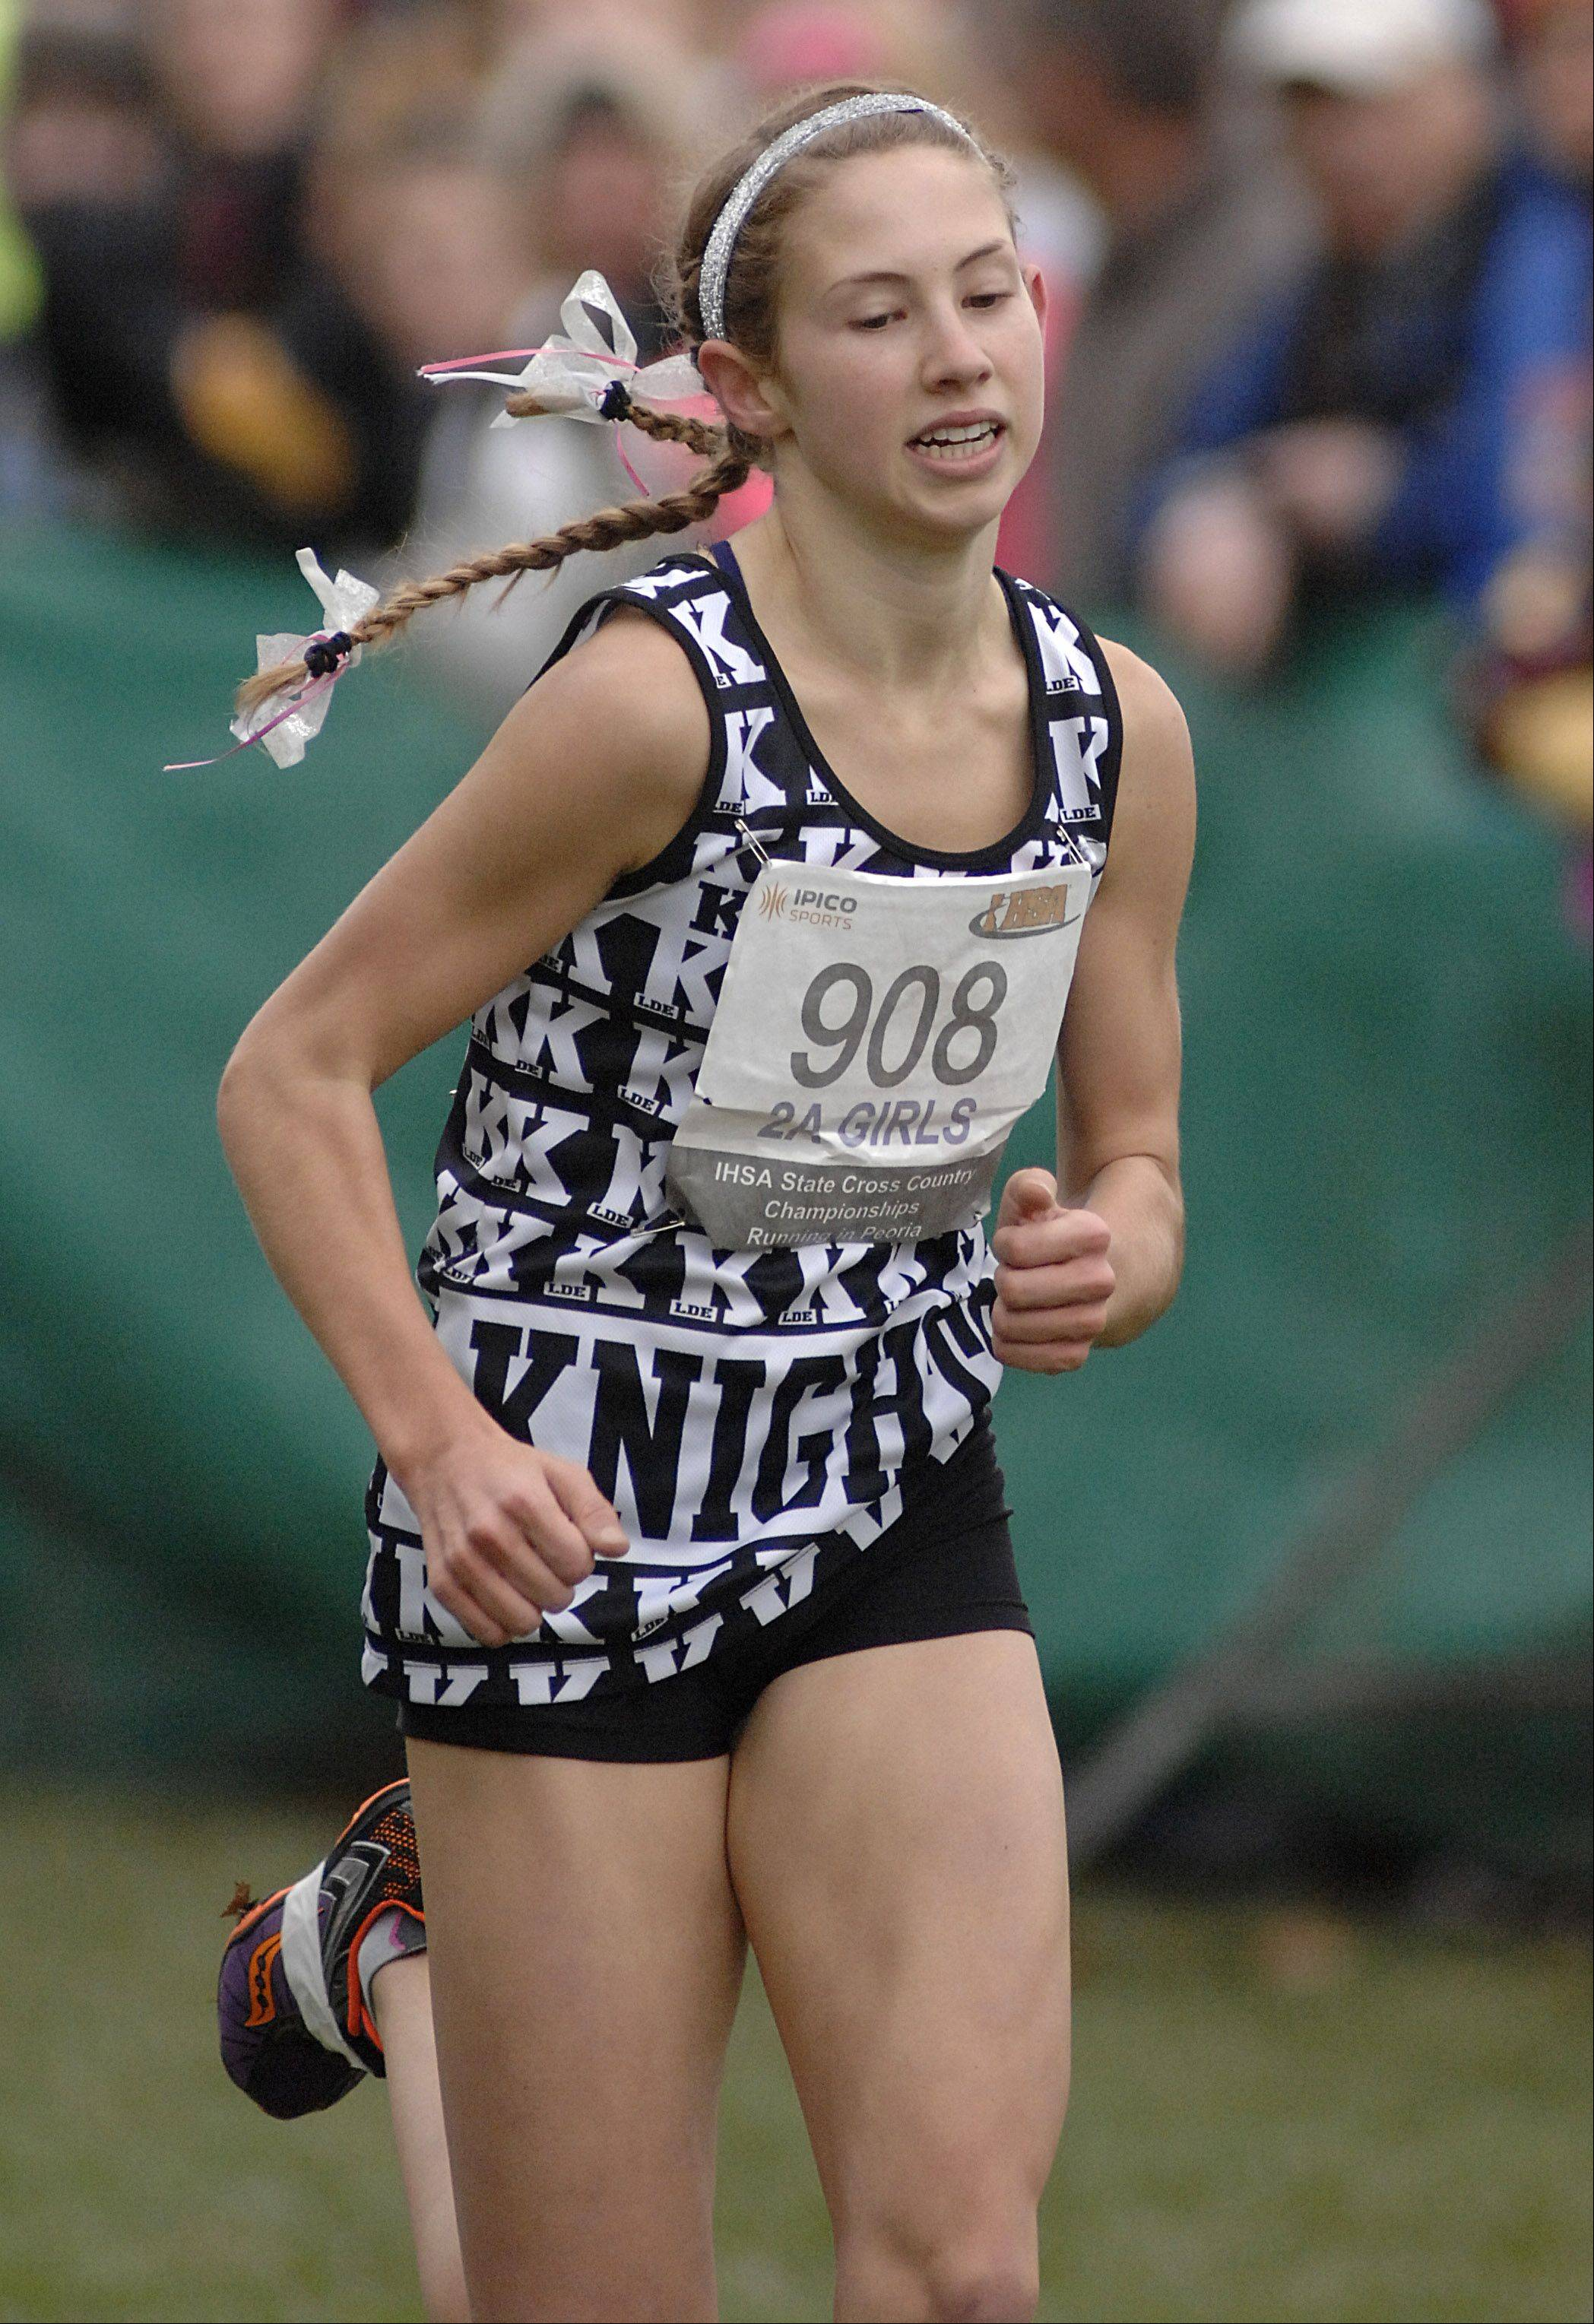 Kaneland's Victoria Clinton approaches the finish line in the state cross country 2A final to take first place in Peoria on Saturday, November 3.